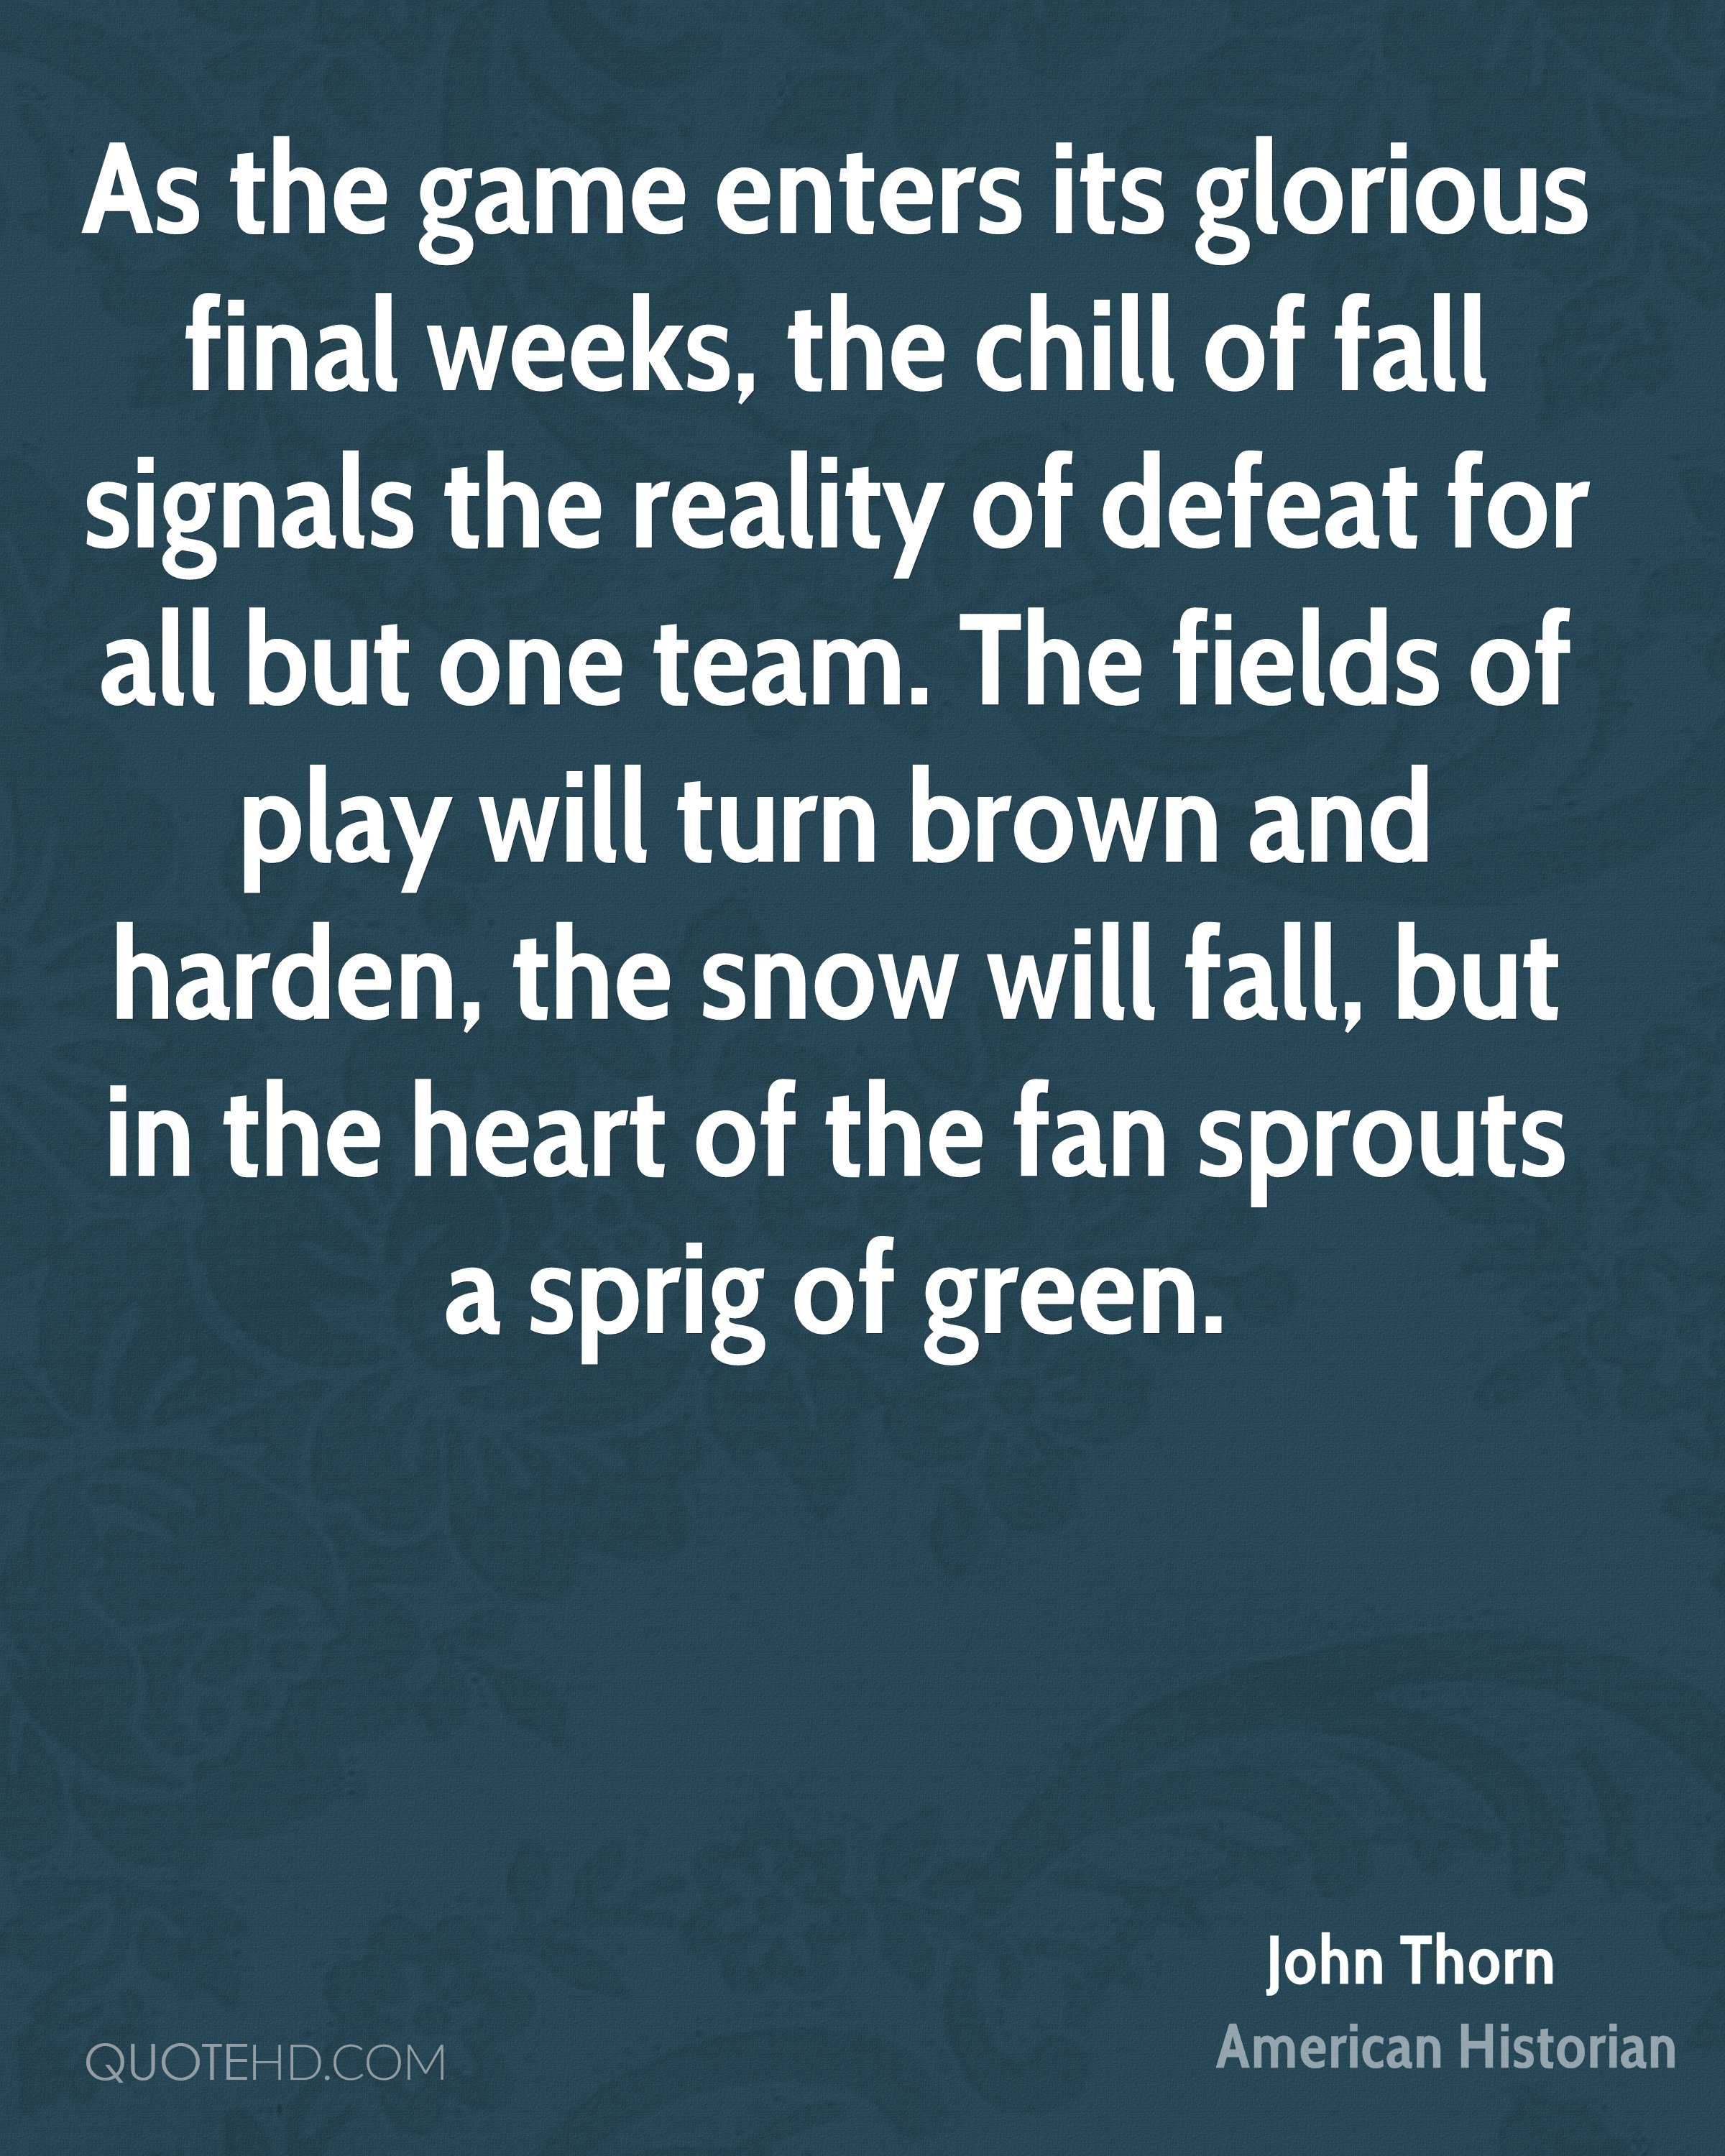 As the game enters its glorious final weeks, the chill of fall signals the reality of defeat for all but one team. The fields of play will turn brown and harden, the snow will fall, but in the heart of the fan sprouts a sprig of green.